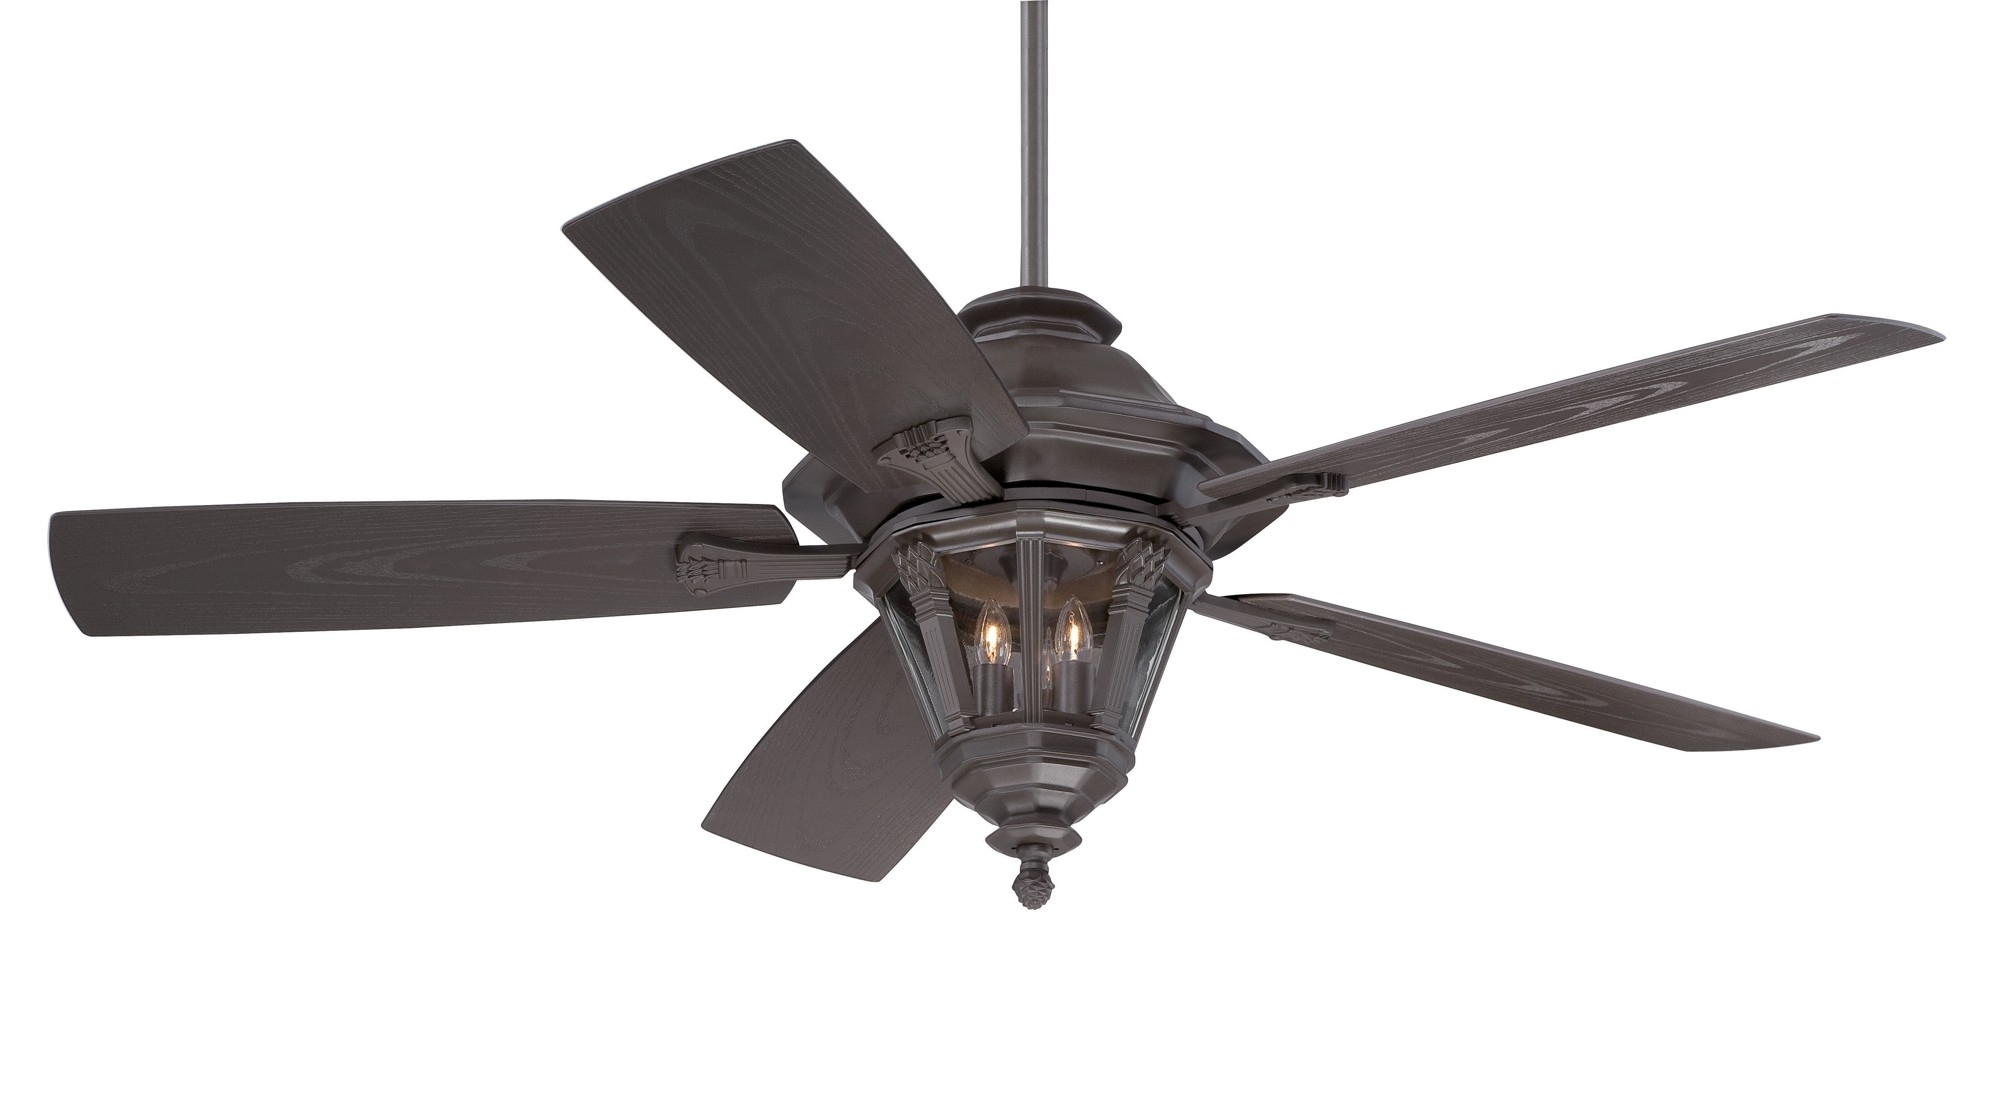 Most Current 35 Outdoor Ceiling Fan, Top 10 Unique Outdoor Ceiling Fans 2018 Inside Minka Aire Outdoor Ceiling Fans With Lights (View 14 of 20)